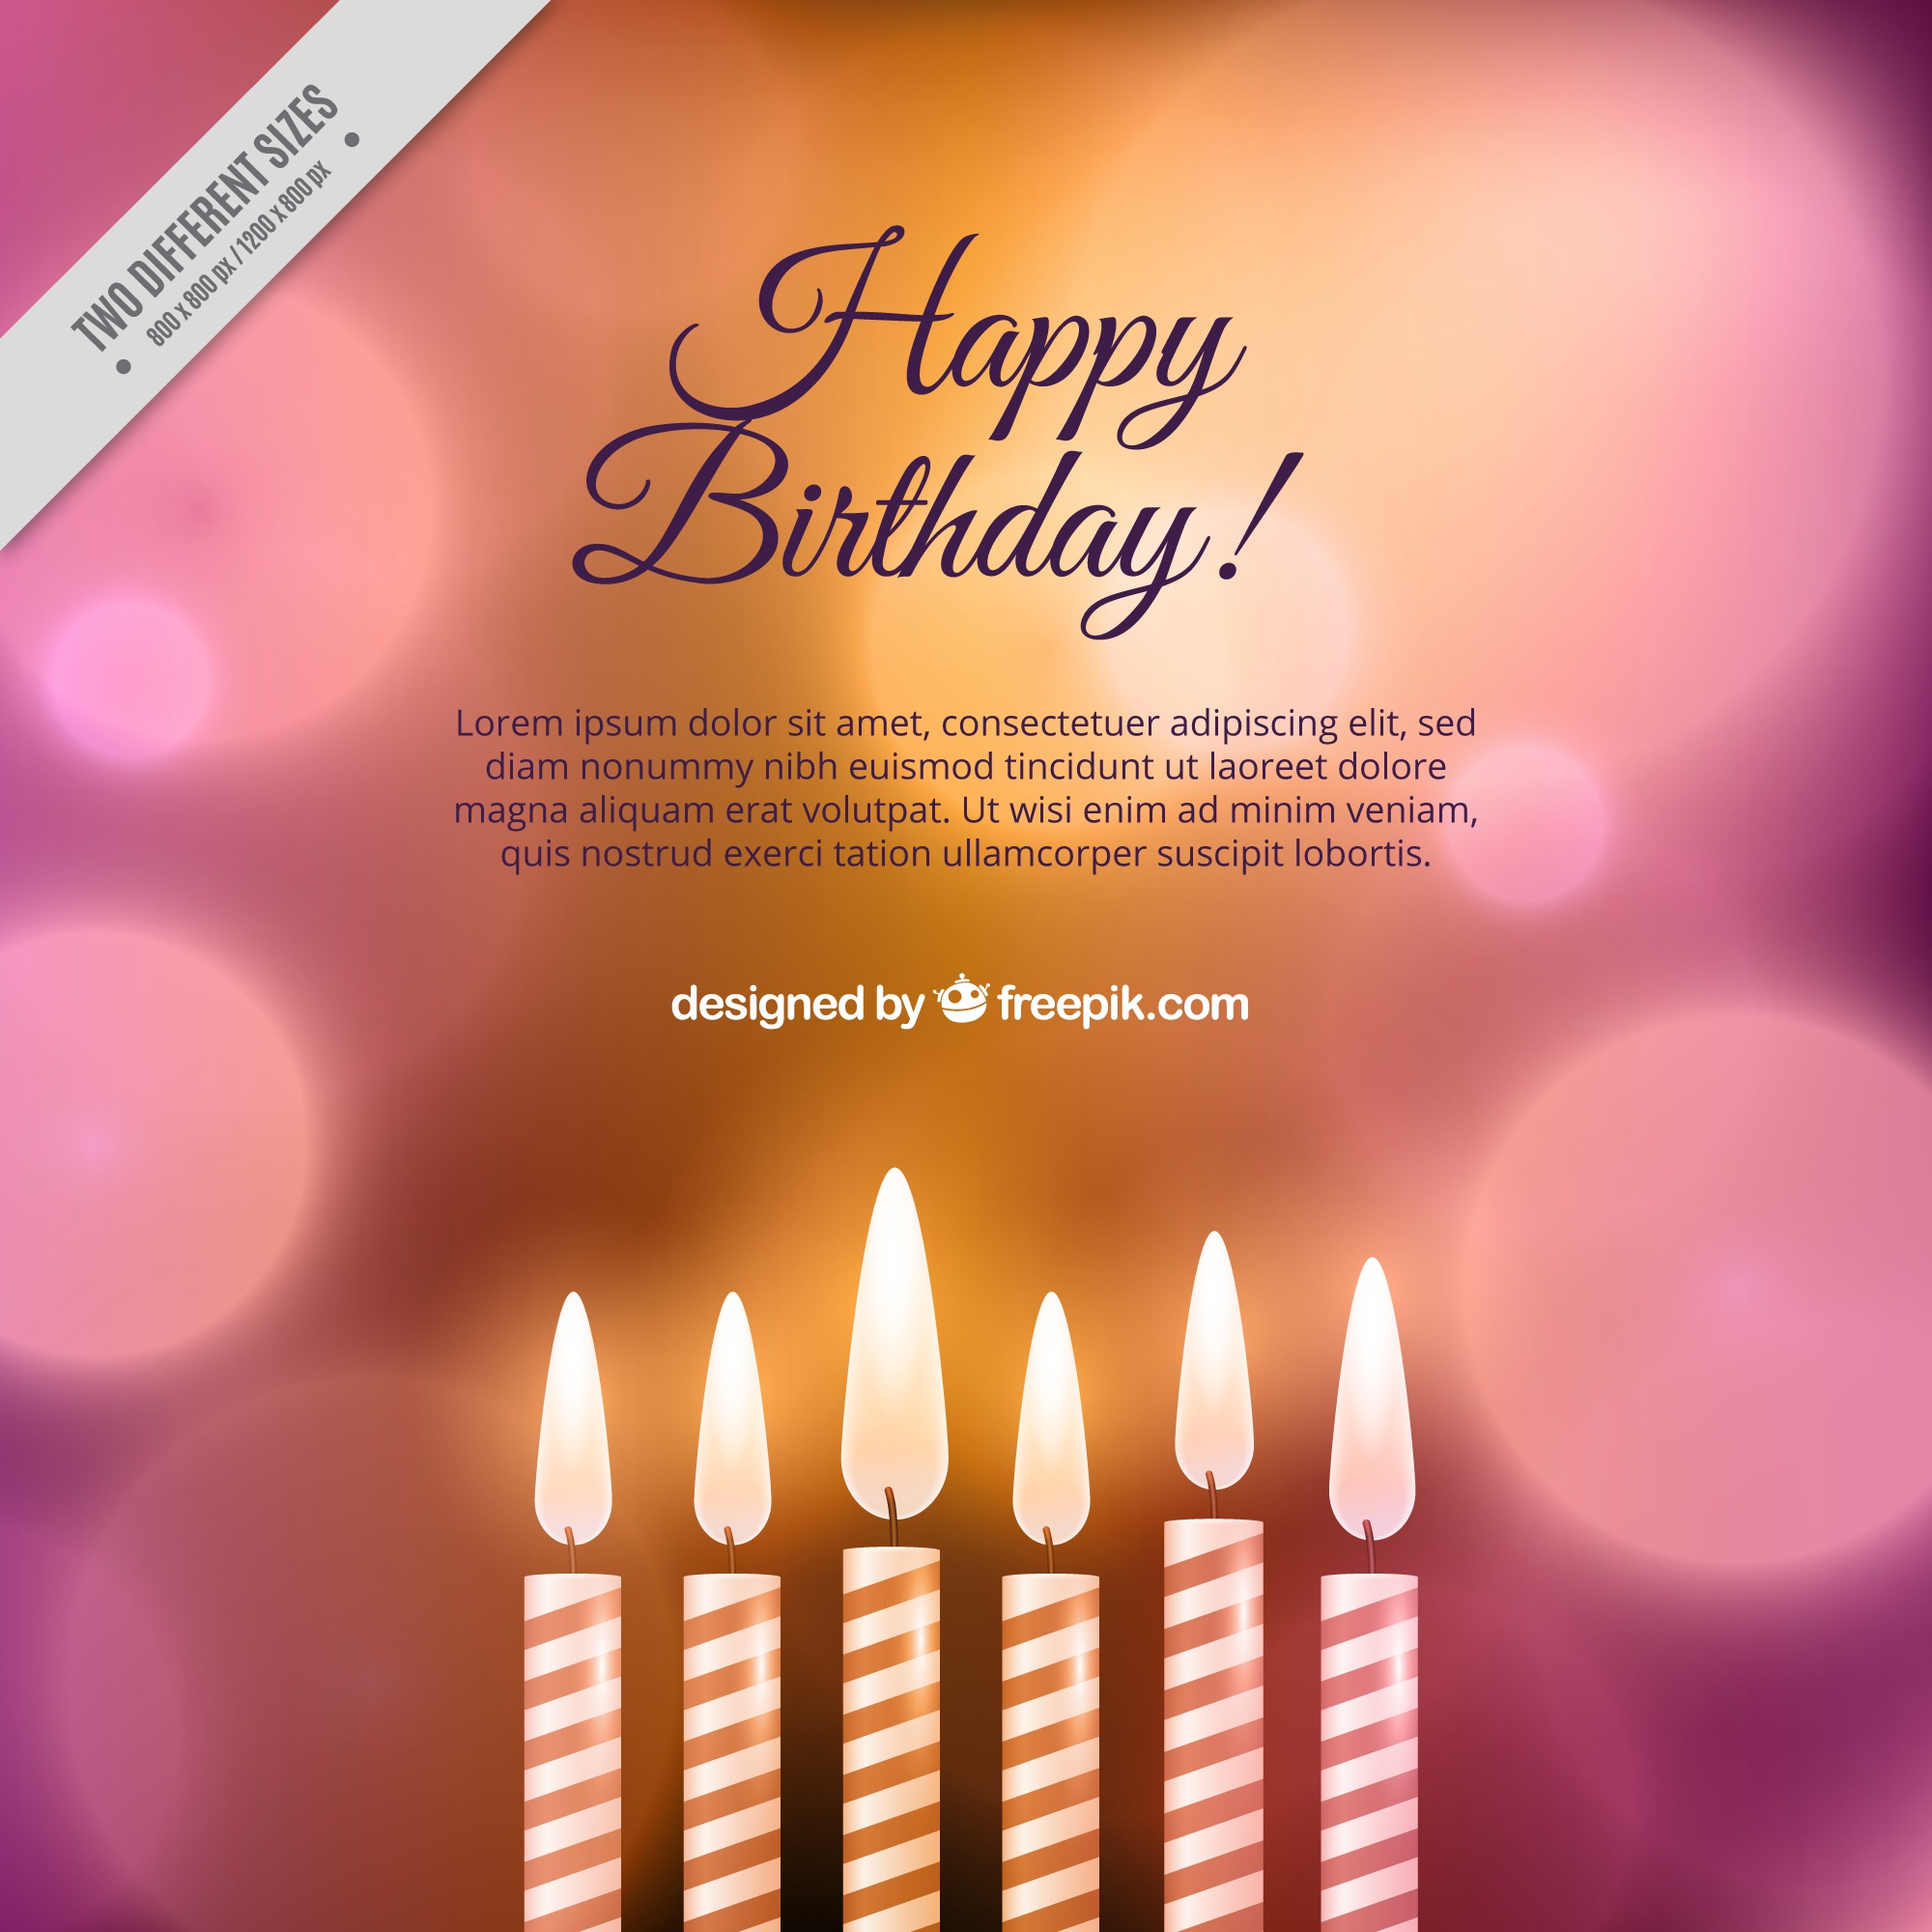 Birthday background with candles and blurred effect